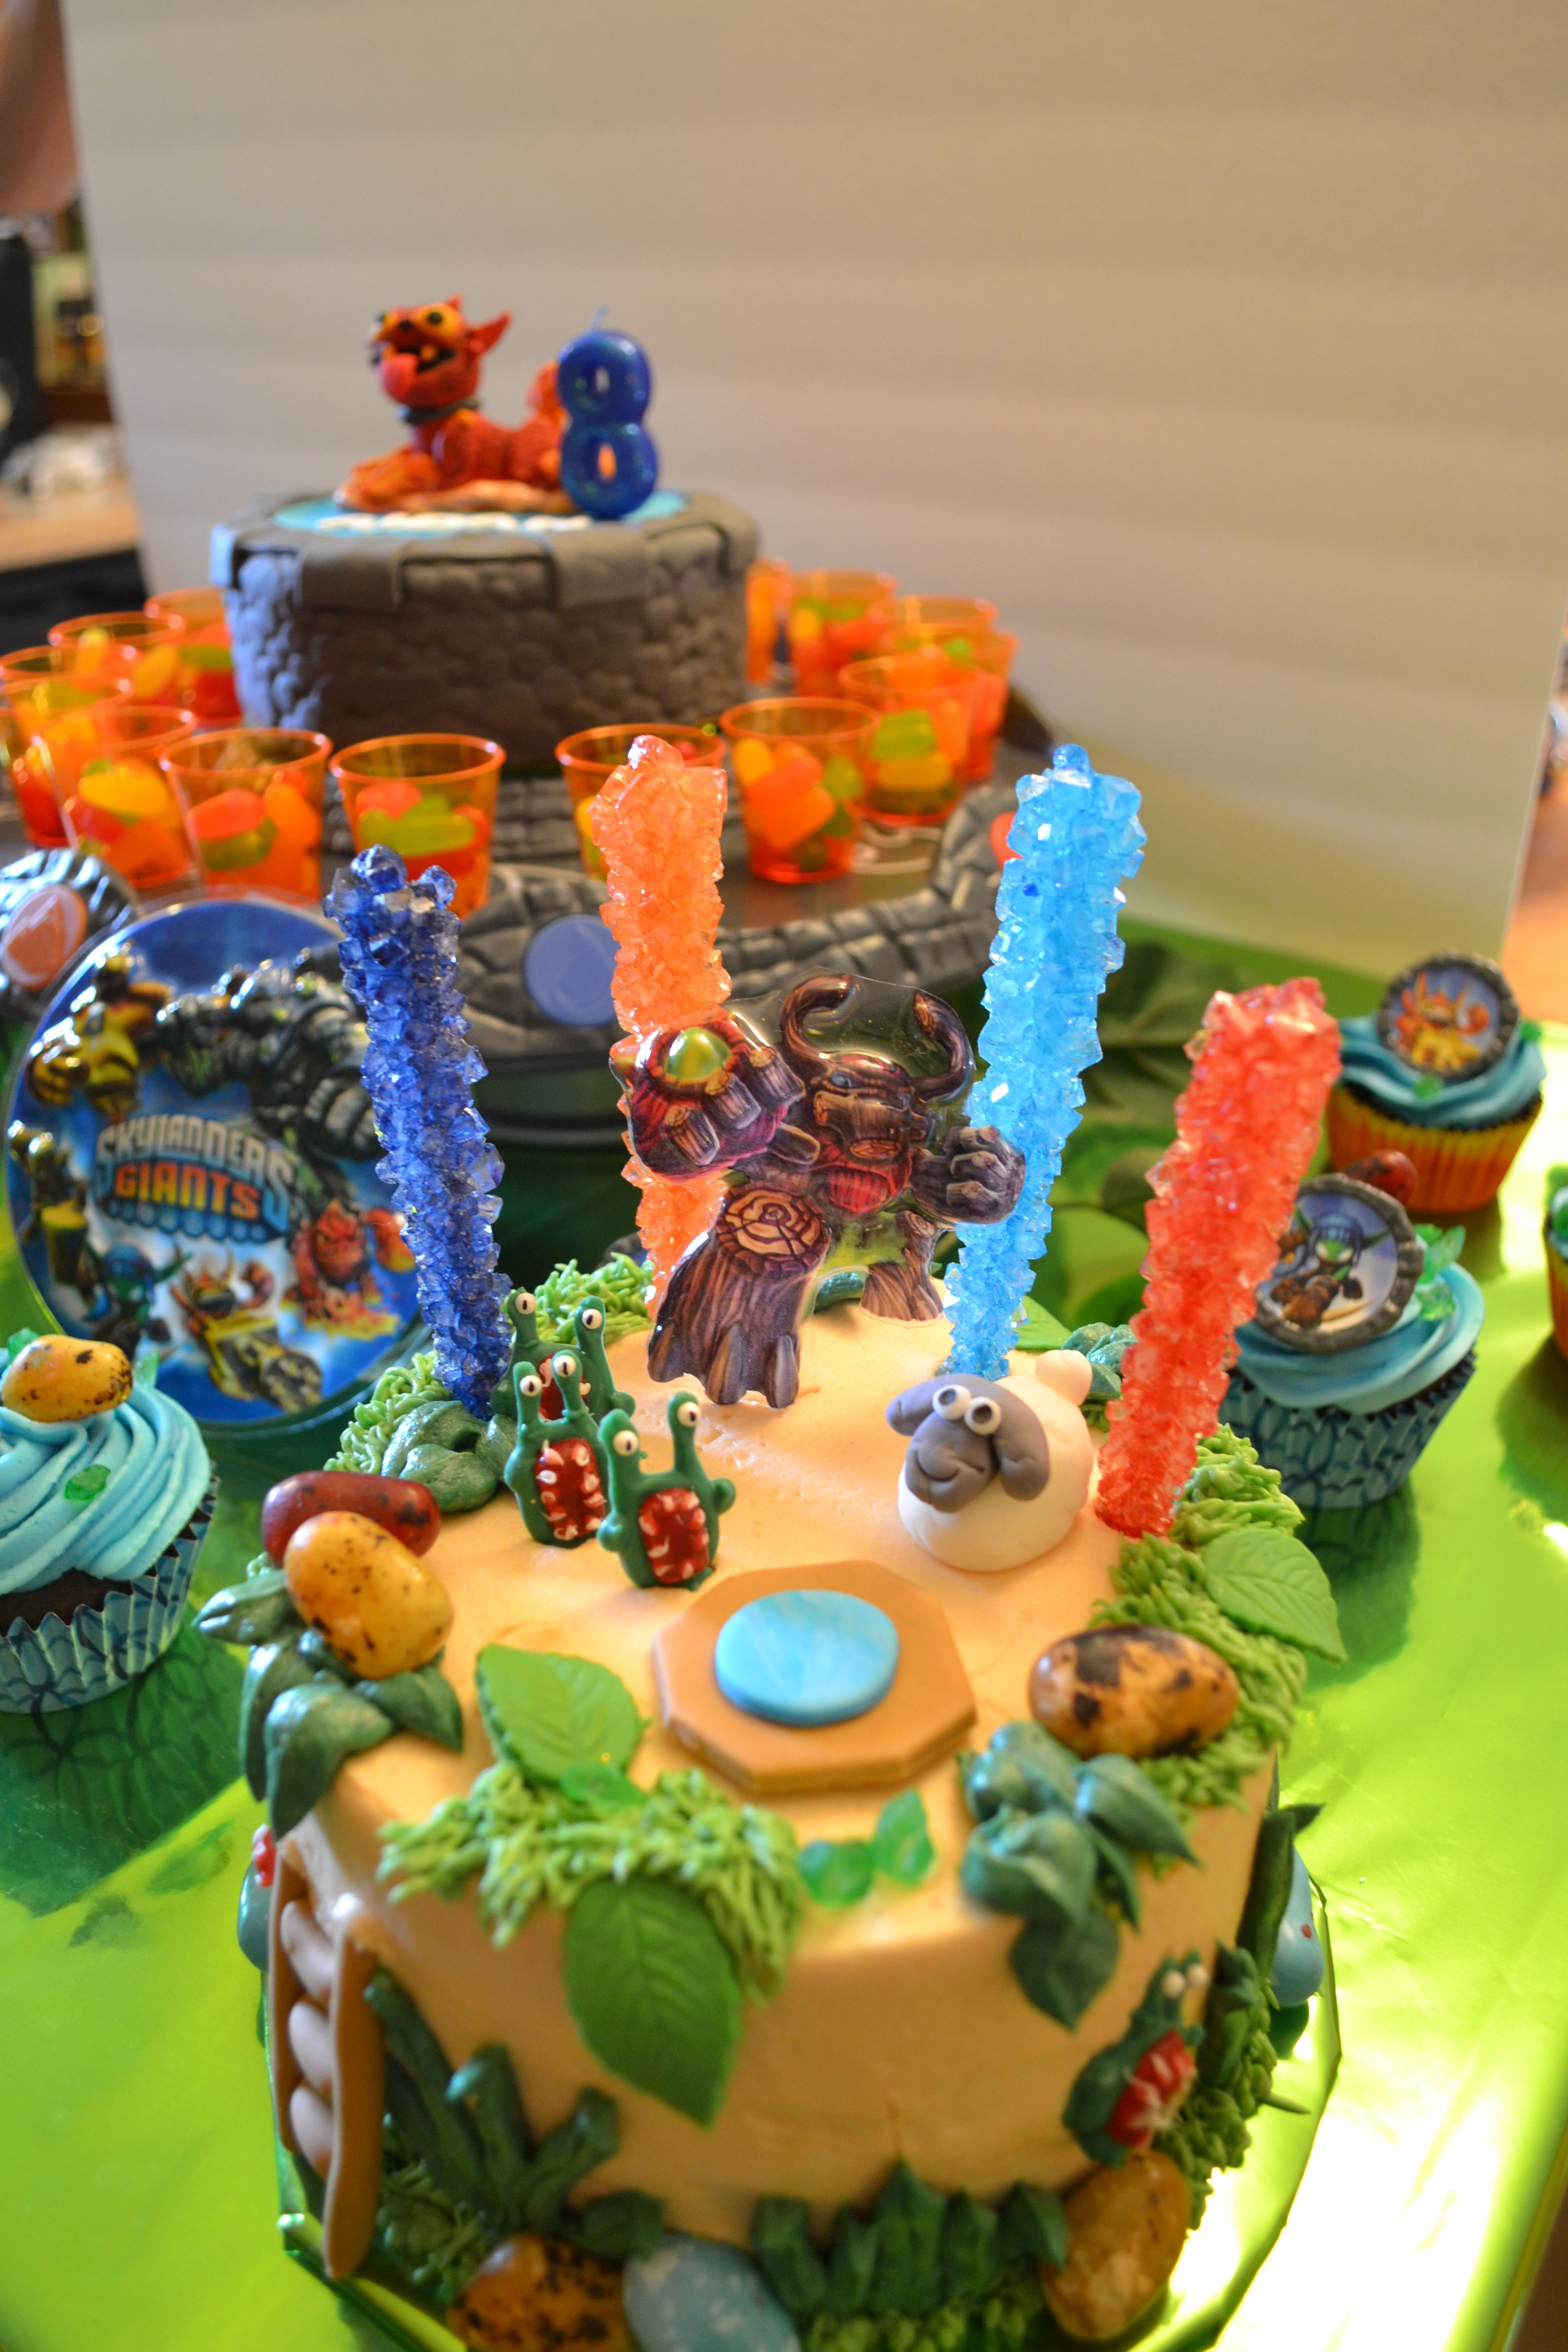 Cool Skylander Birthday Cake Close Up Of Worlds With Sheep And Chompies Funny Birthday Cards Online Inifofree Goldxyz